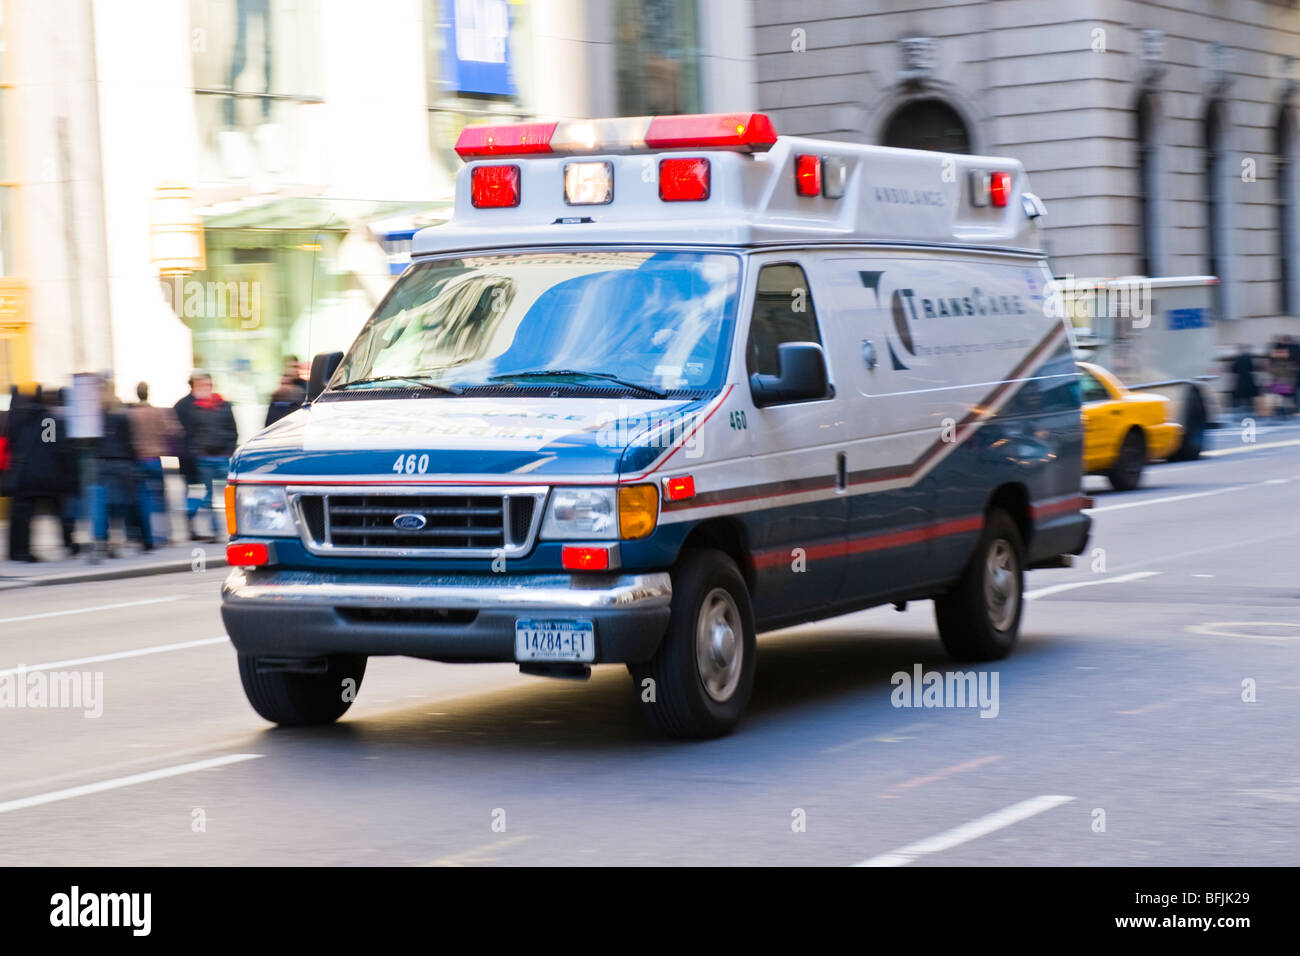 New York City , The Big Apple , Trans Care ambulance with lights flashing rushes to emergency in a blur - Stock Image